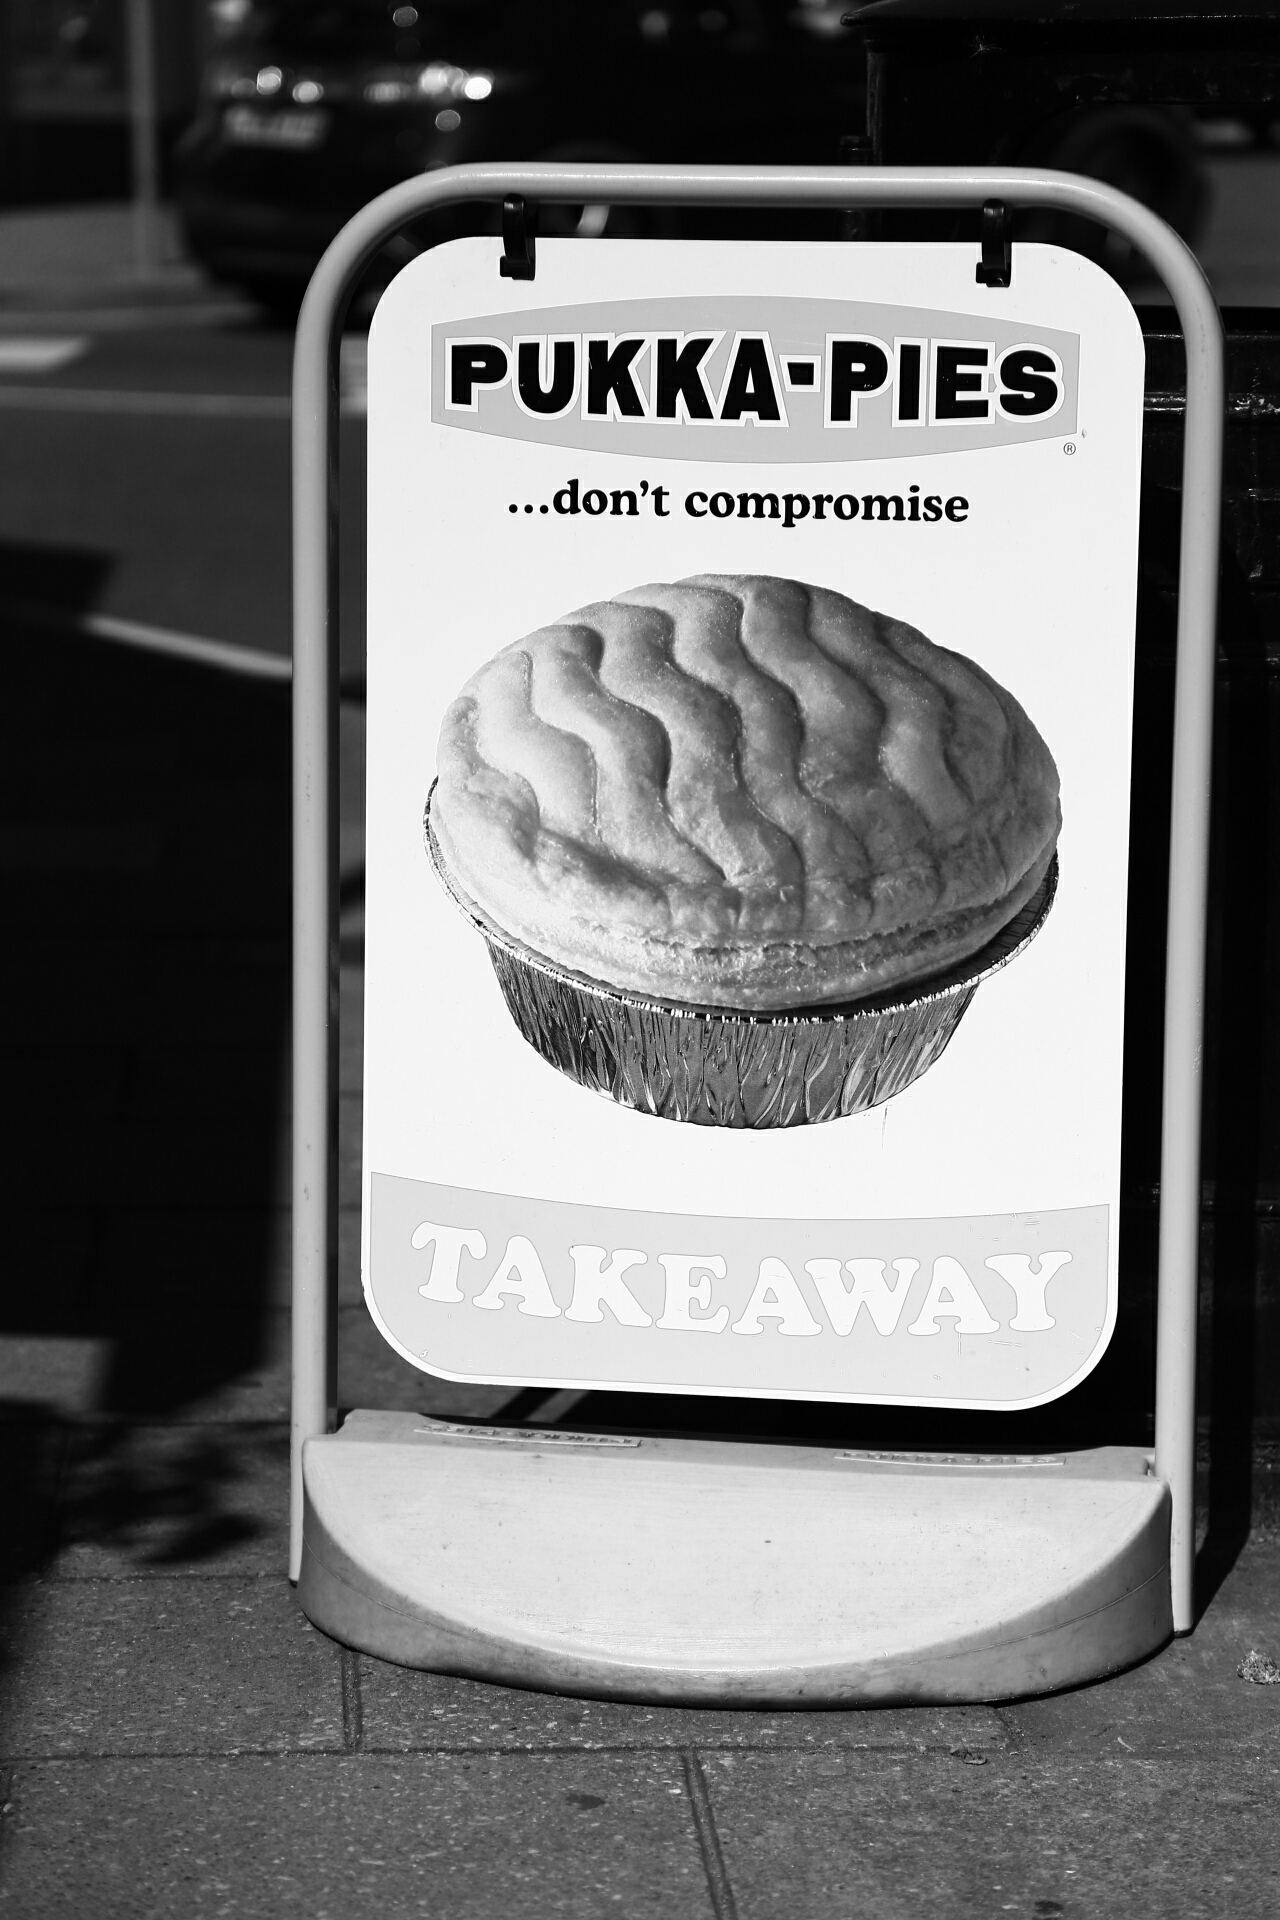 Is this advert for or against pukka pies?